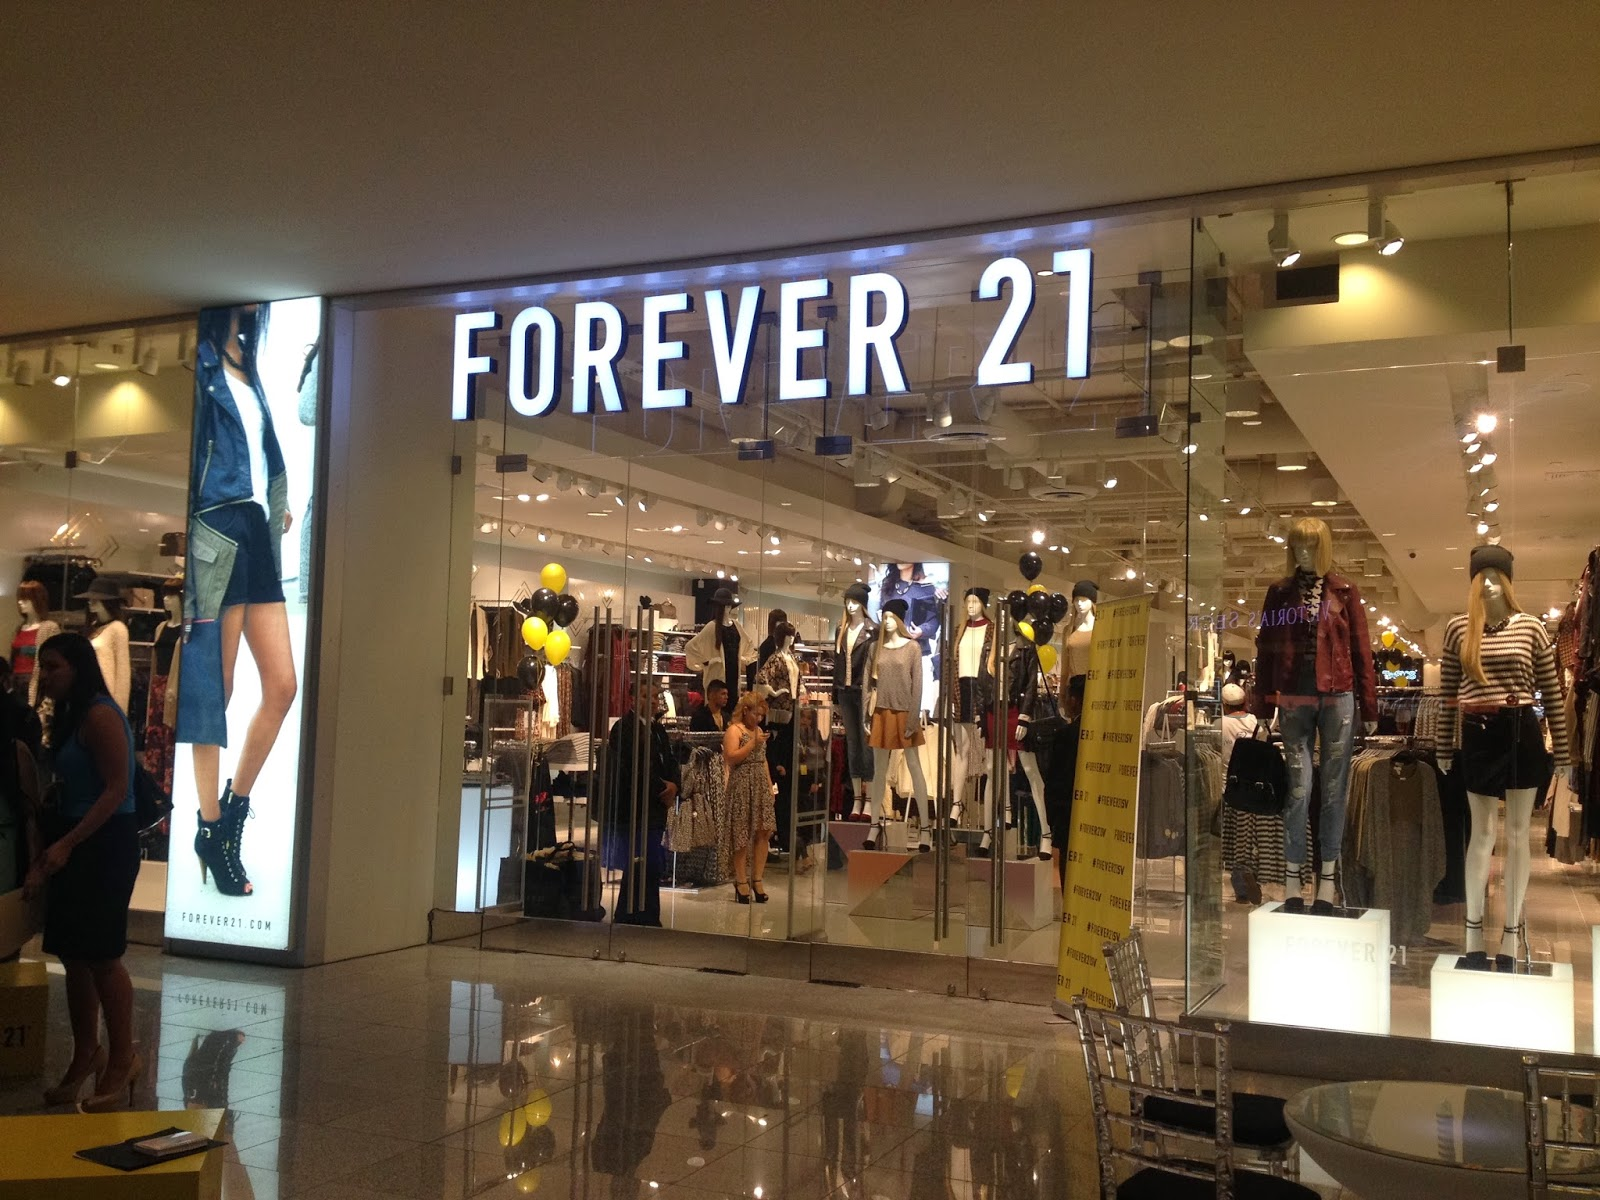 Forever 21 Today. These days, Forever XXI enjoys a lofty position among many other leading brands in the business, including the much older H&M. What's truly amazing about Forever 21 is how it managed to soar to such great heights in the fashion industry in such a short amount of time.